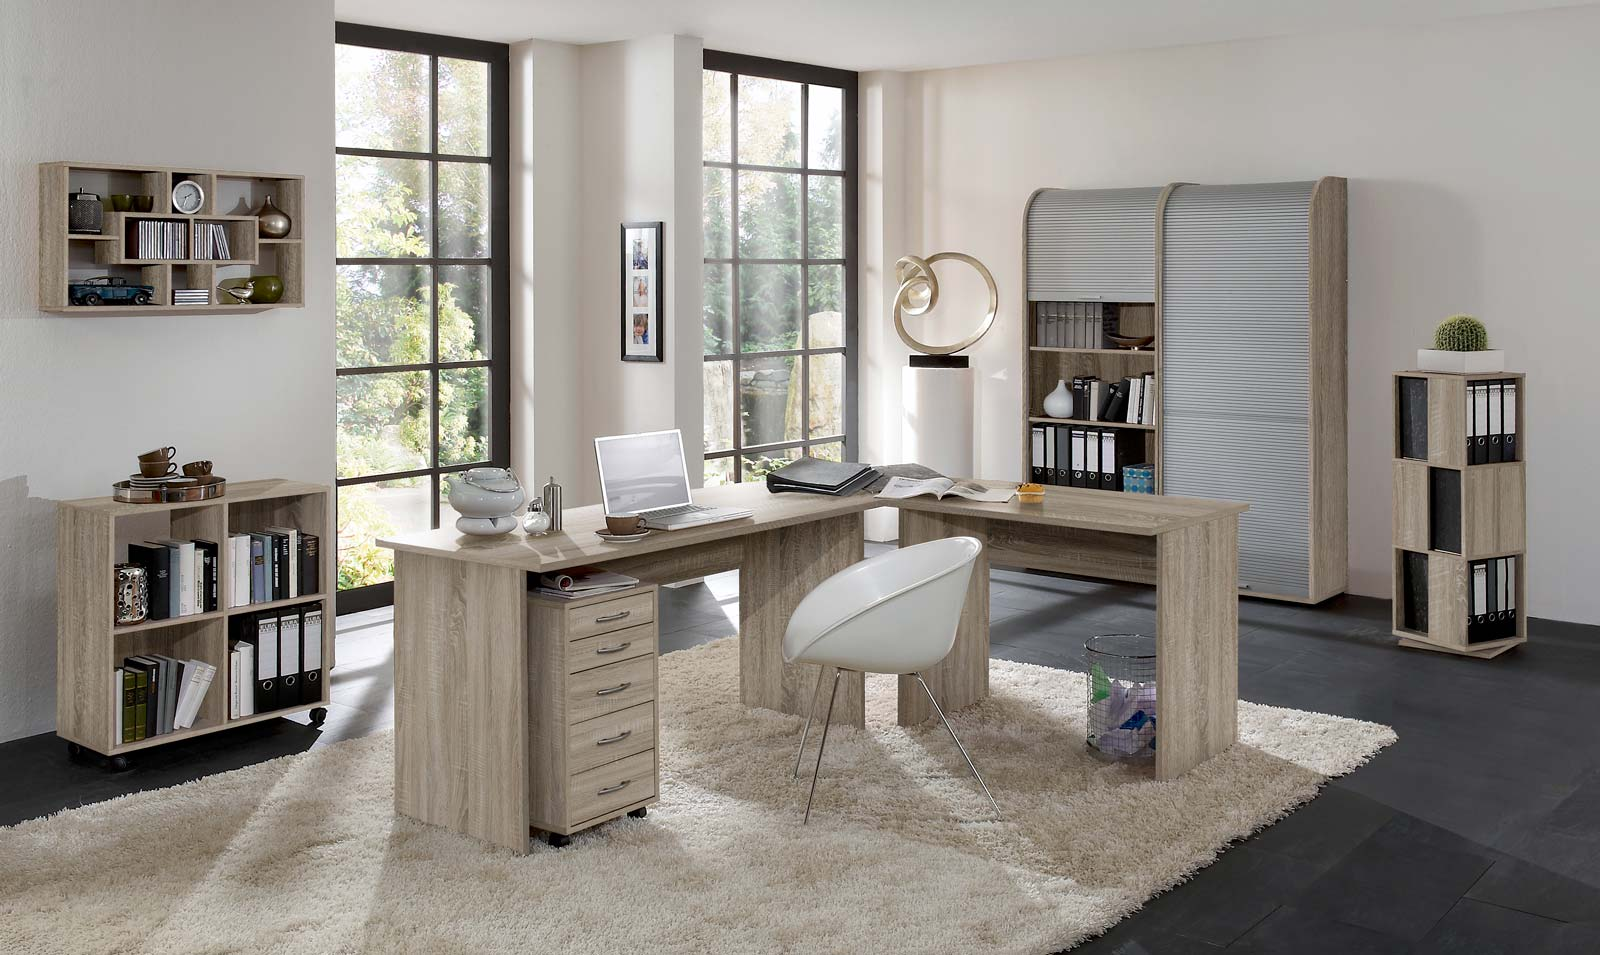 arbeitszimmer schreibtisch b rom bel komplett set office profi in eiche sonoma ebay. Black Bedroom Furniture Sets. Home Design Ideas